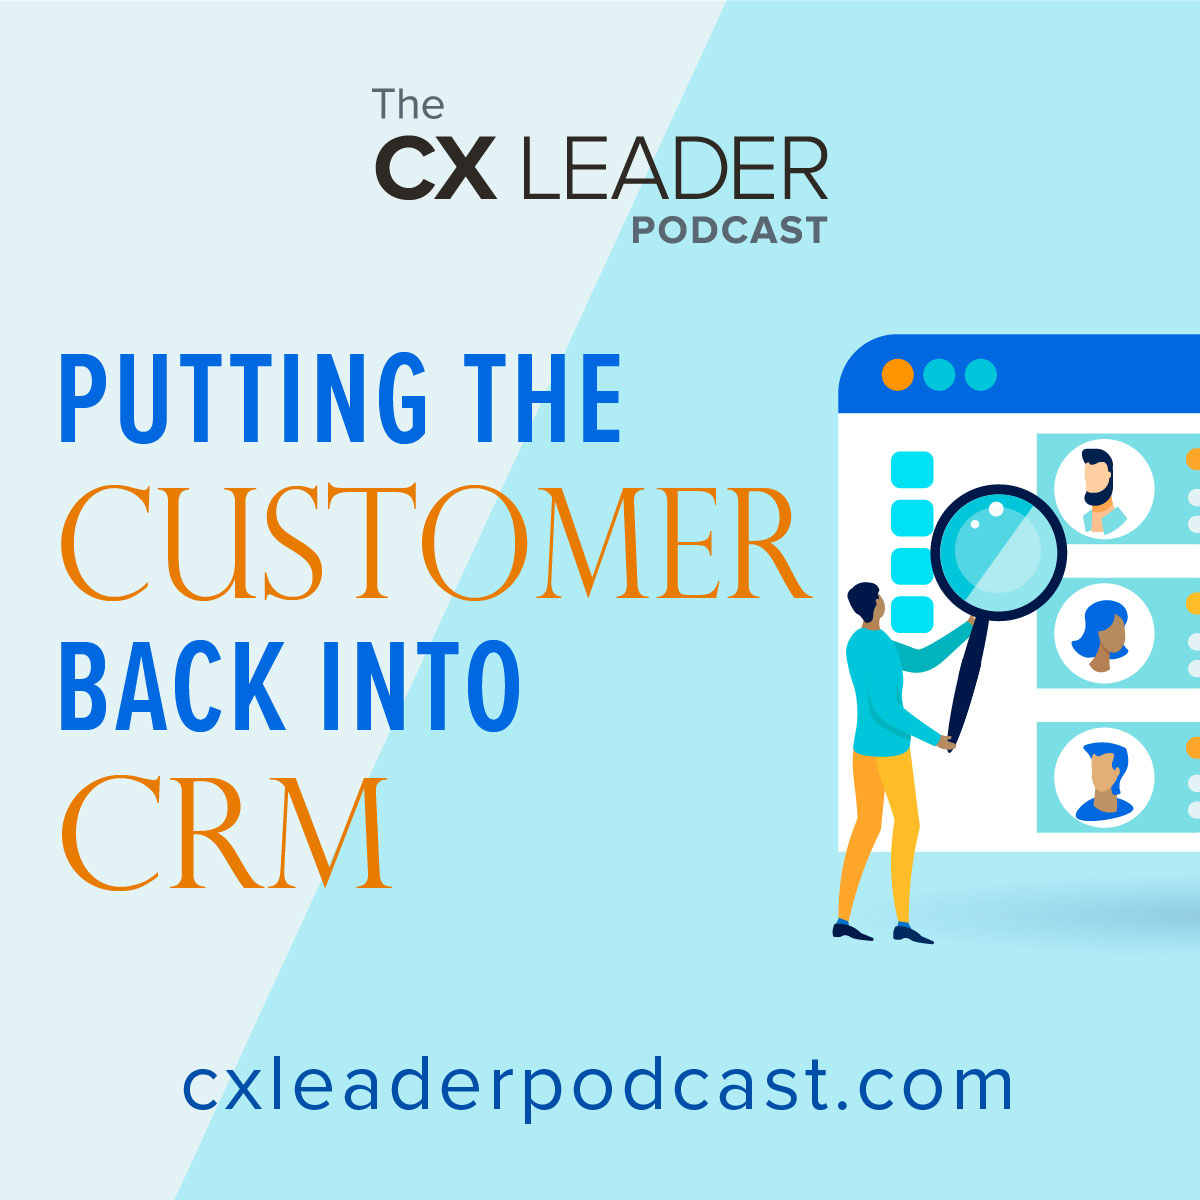 Putting the Customer back into CRM